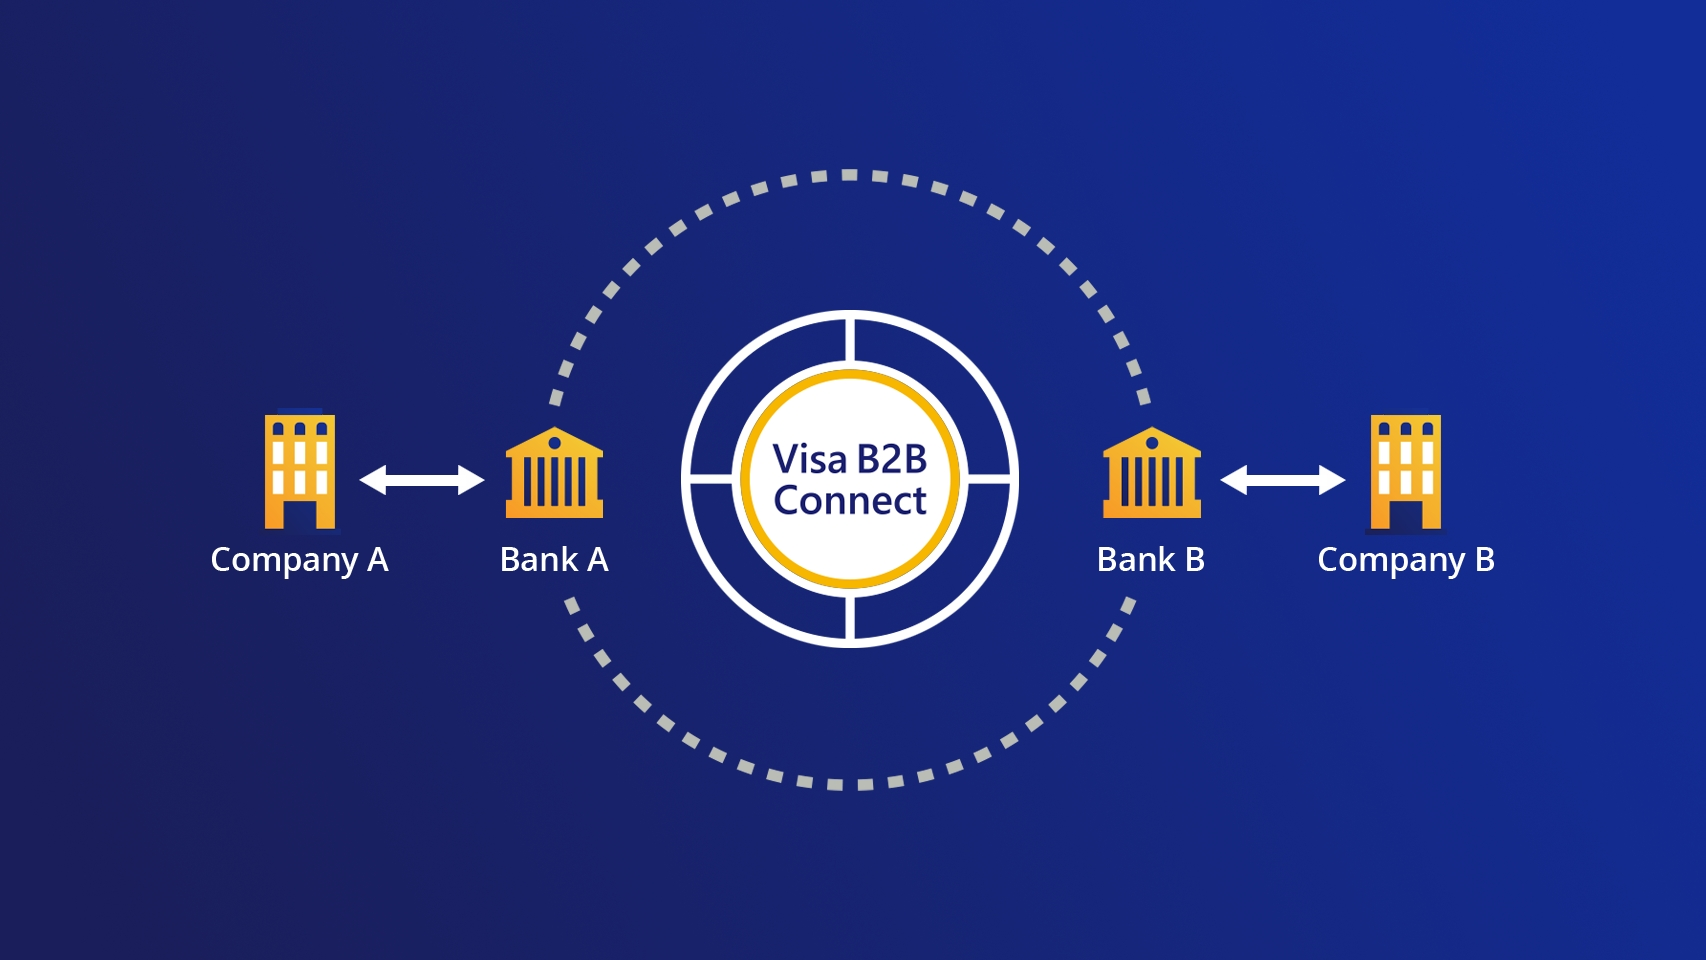 Visa B2B Connect Launches Globally | Business Wire